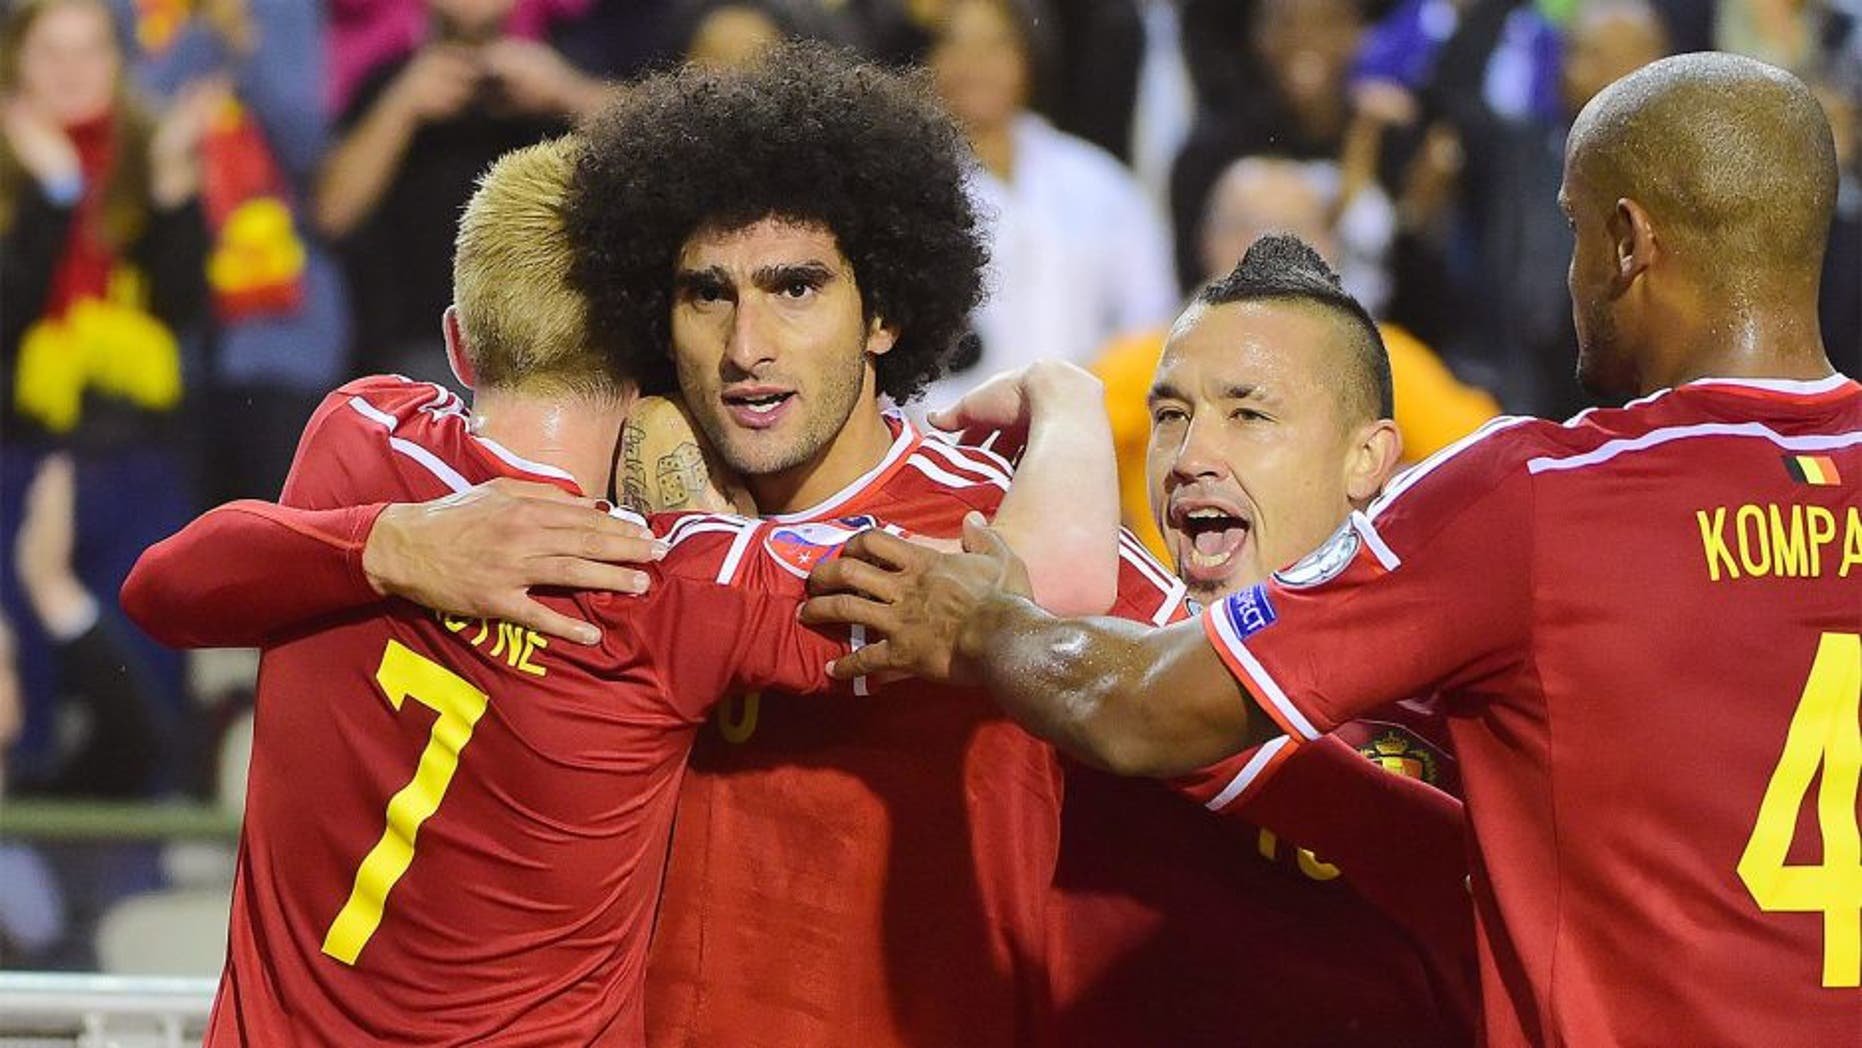 Belgium's Marouane Fellaini (2ndL) celebrates after scoring during the Euro 2016 qualifying match between Belgium and Bosnia and Herzegovina at the King Baudouin Stadium in Brussels, on September 3, 2015. AFP PHOTO / EMMANUEL DUNAND (Photo credit should read EMMANUEL DUNAND/AFP/Getty Images)